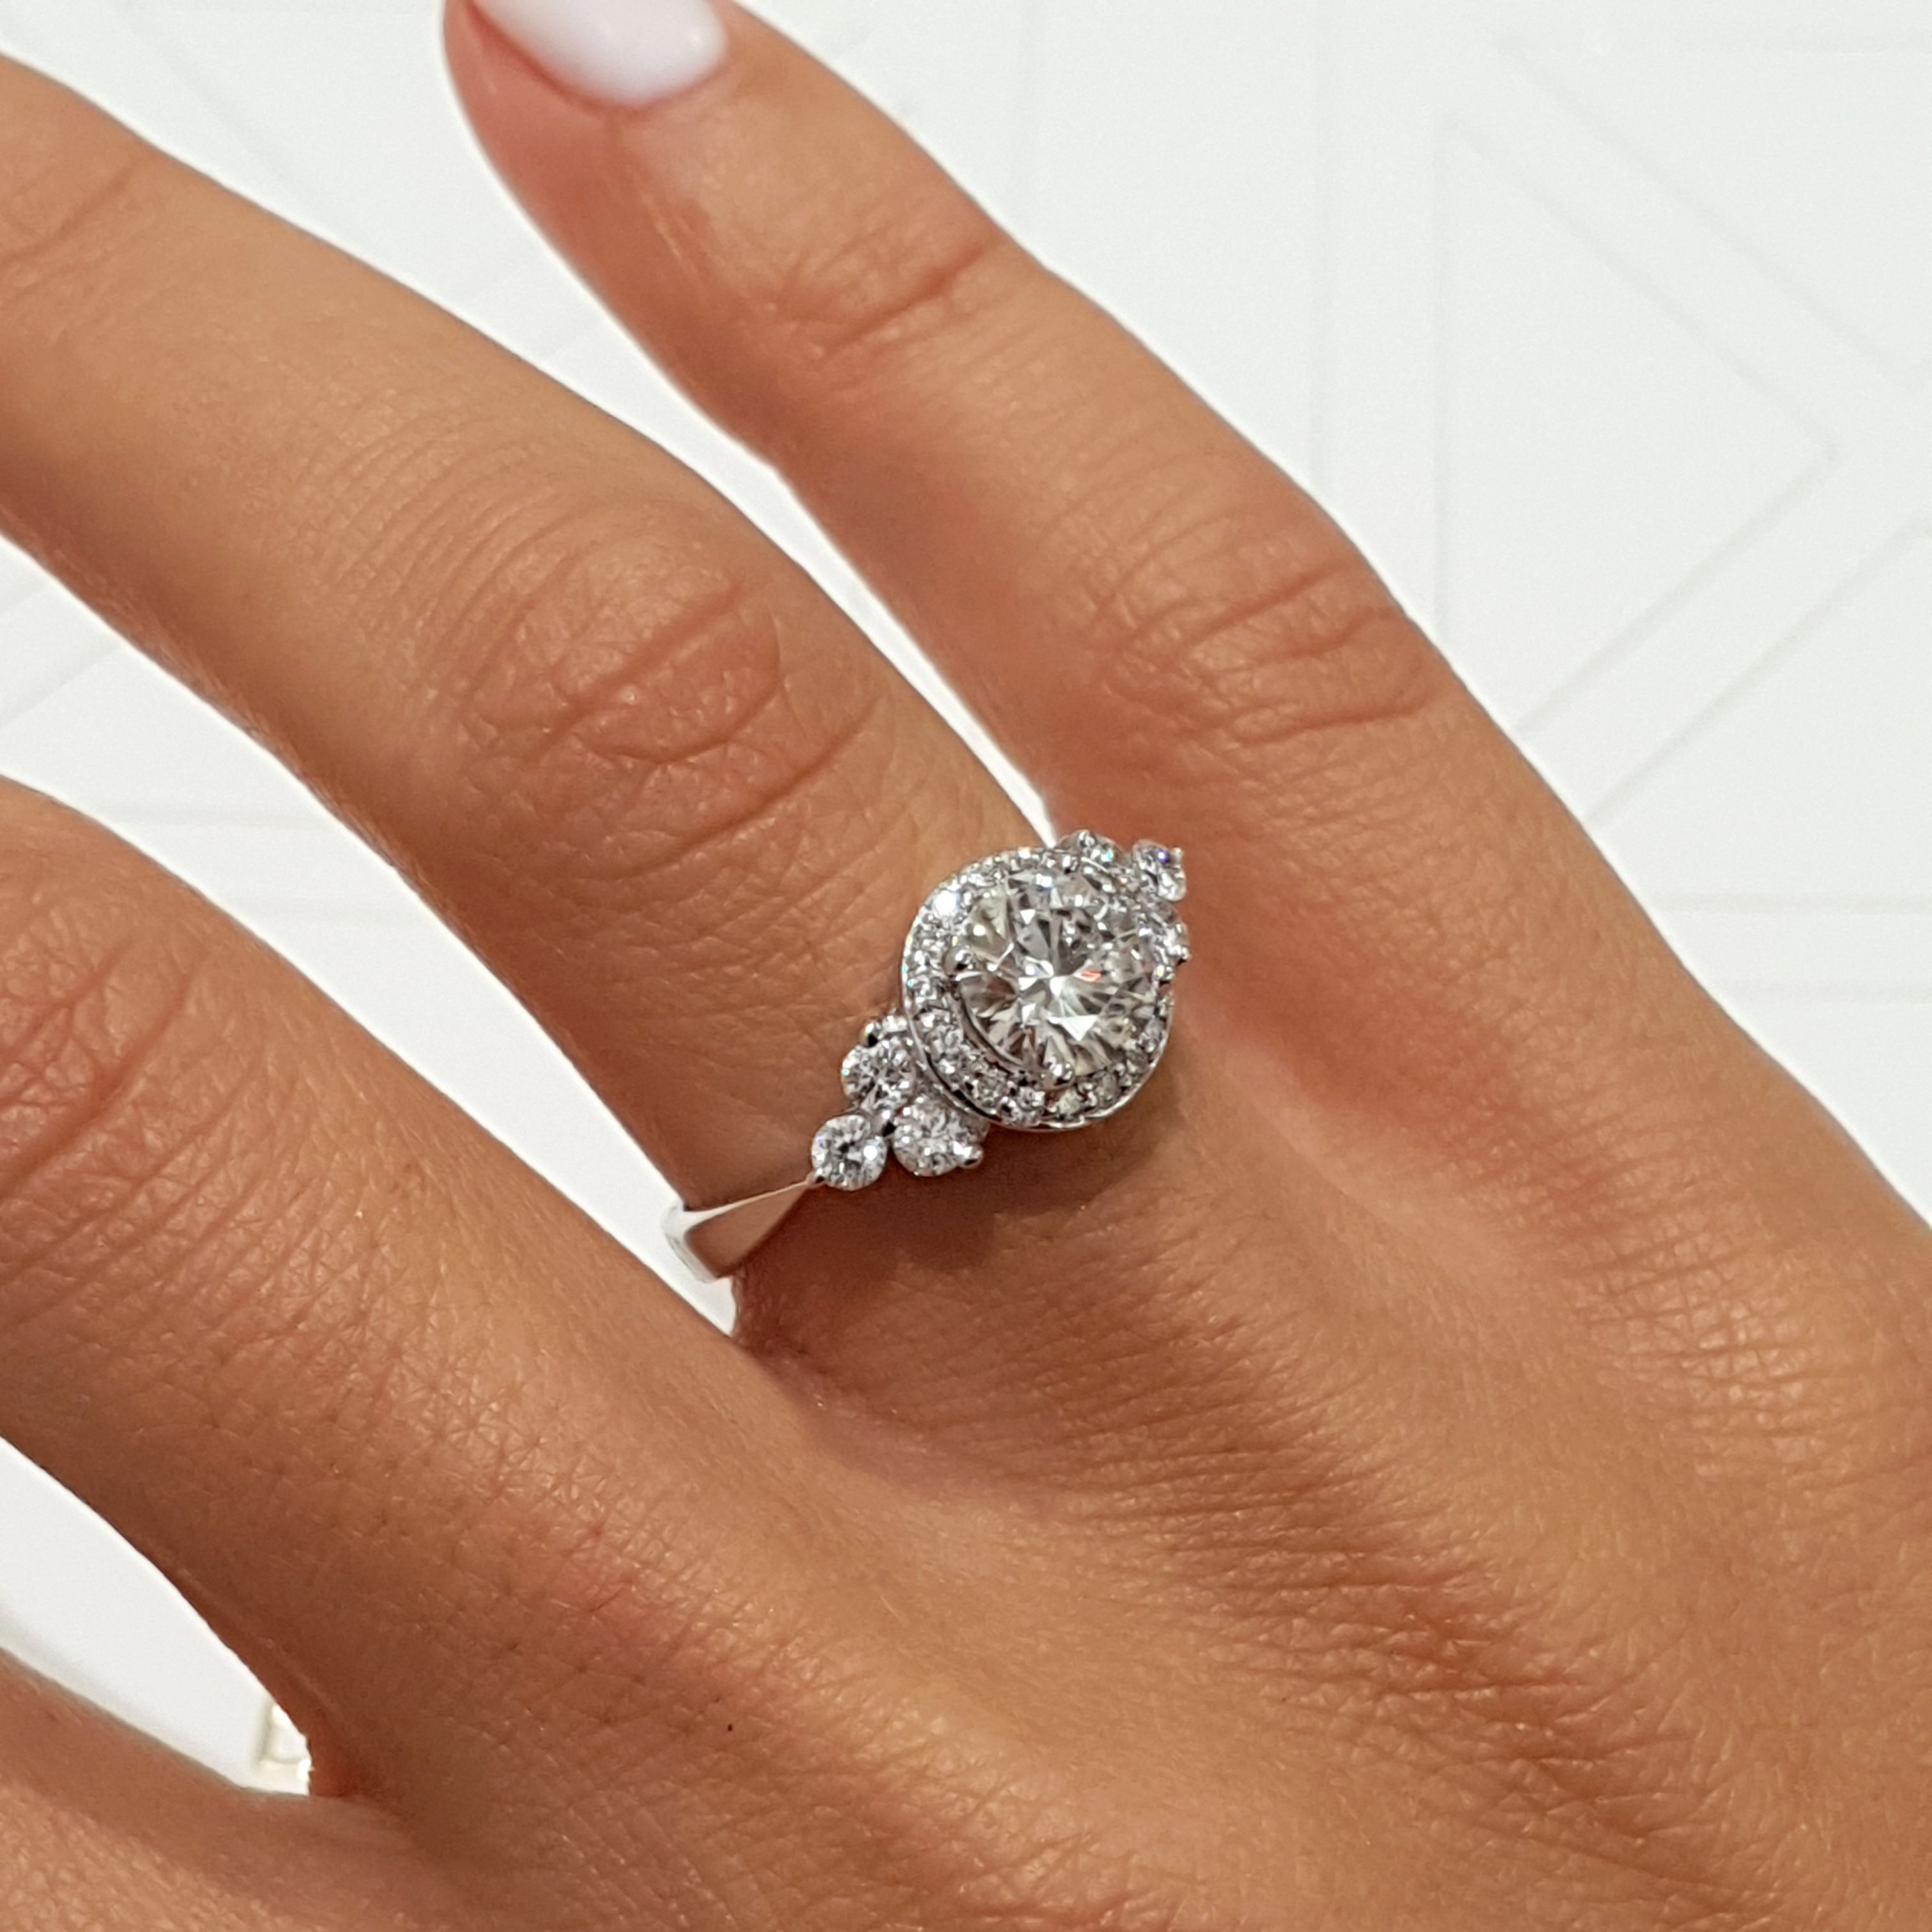 The Ivy Vintage Engagement Ring - 2 Carat F VS2 Halo Ring - 14K White Gold #J99313